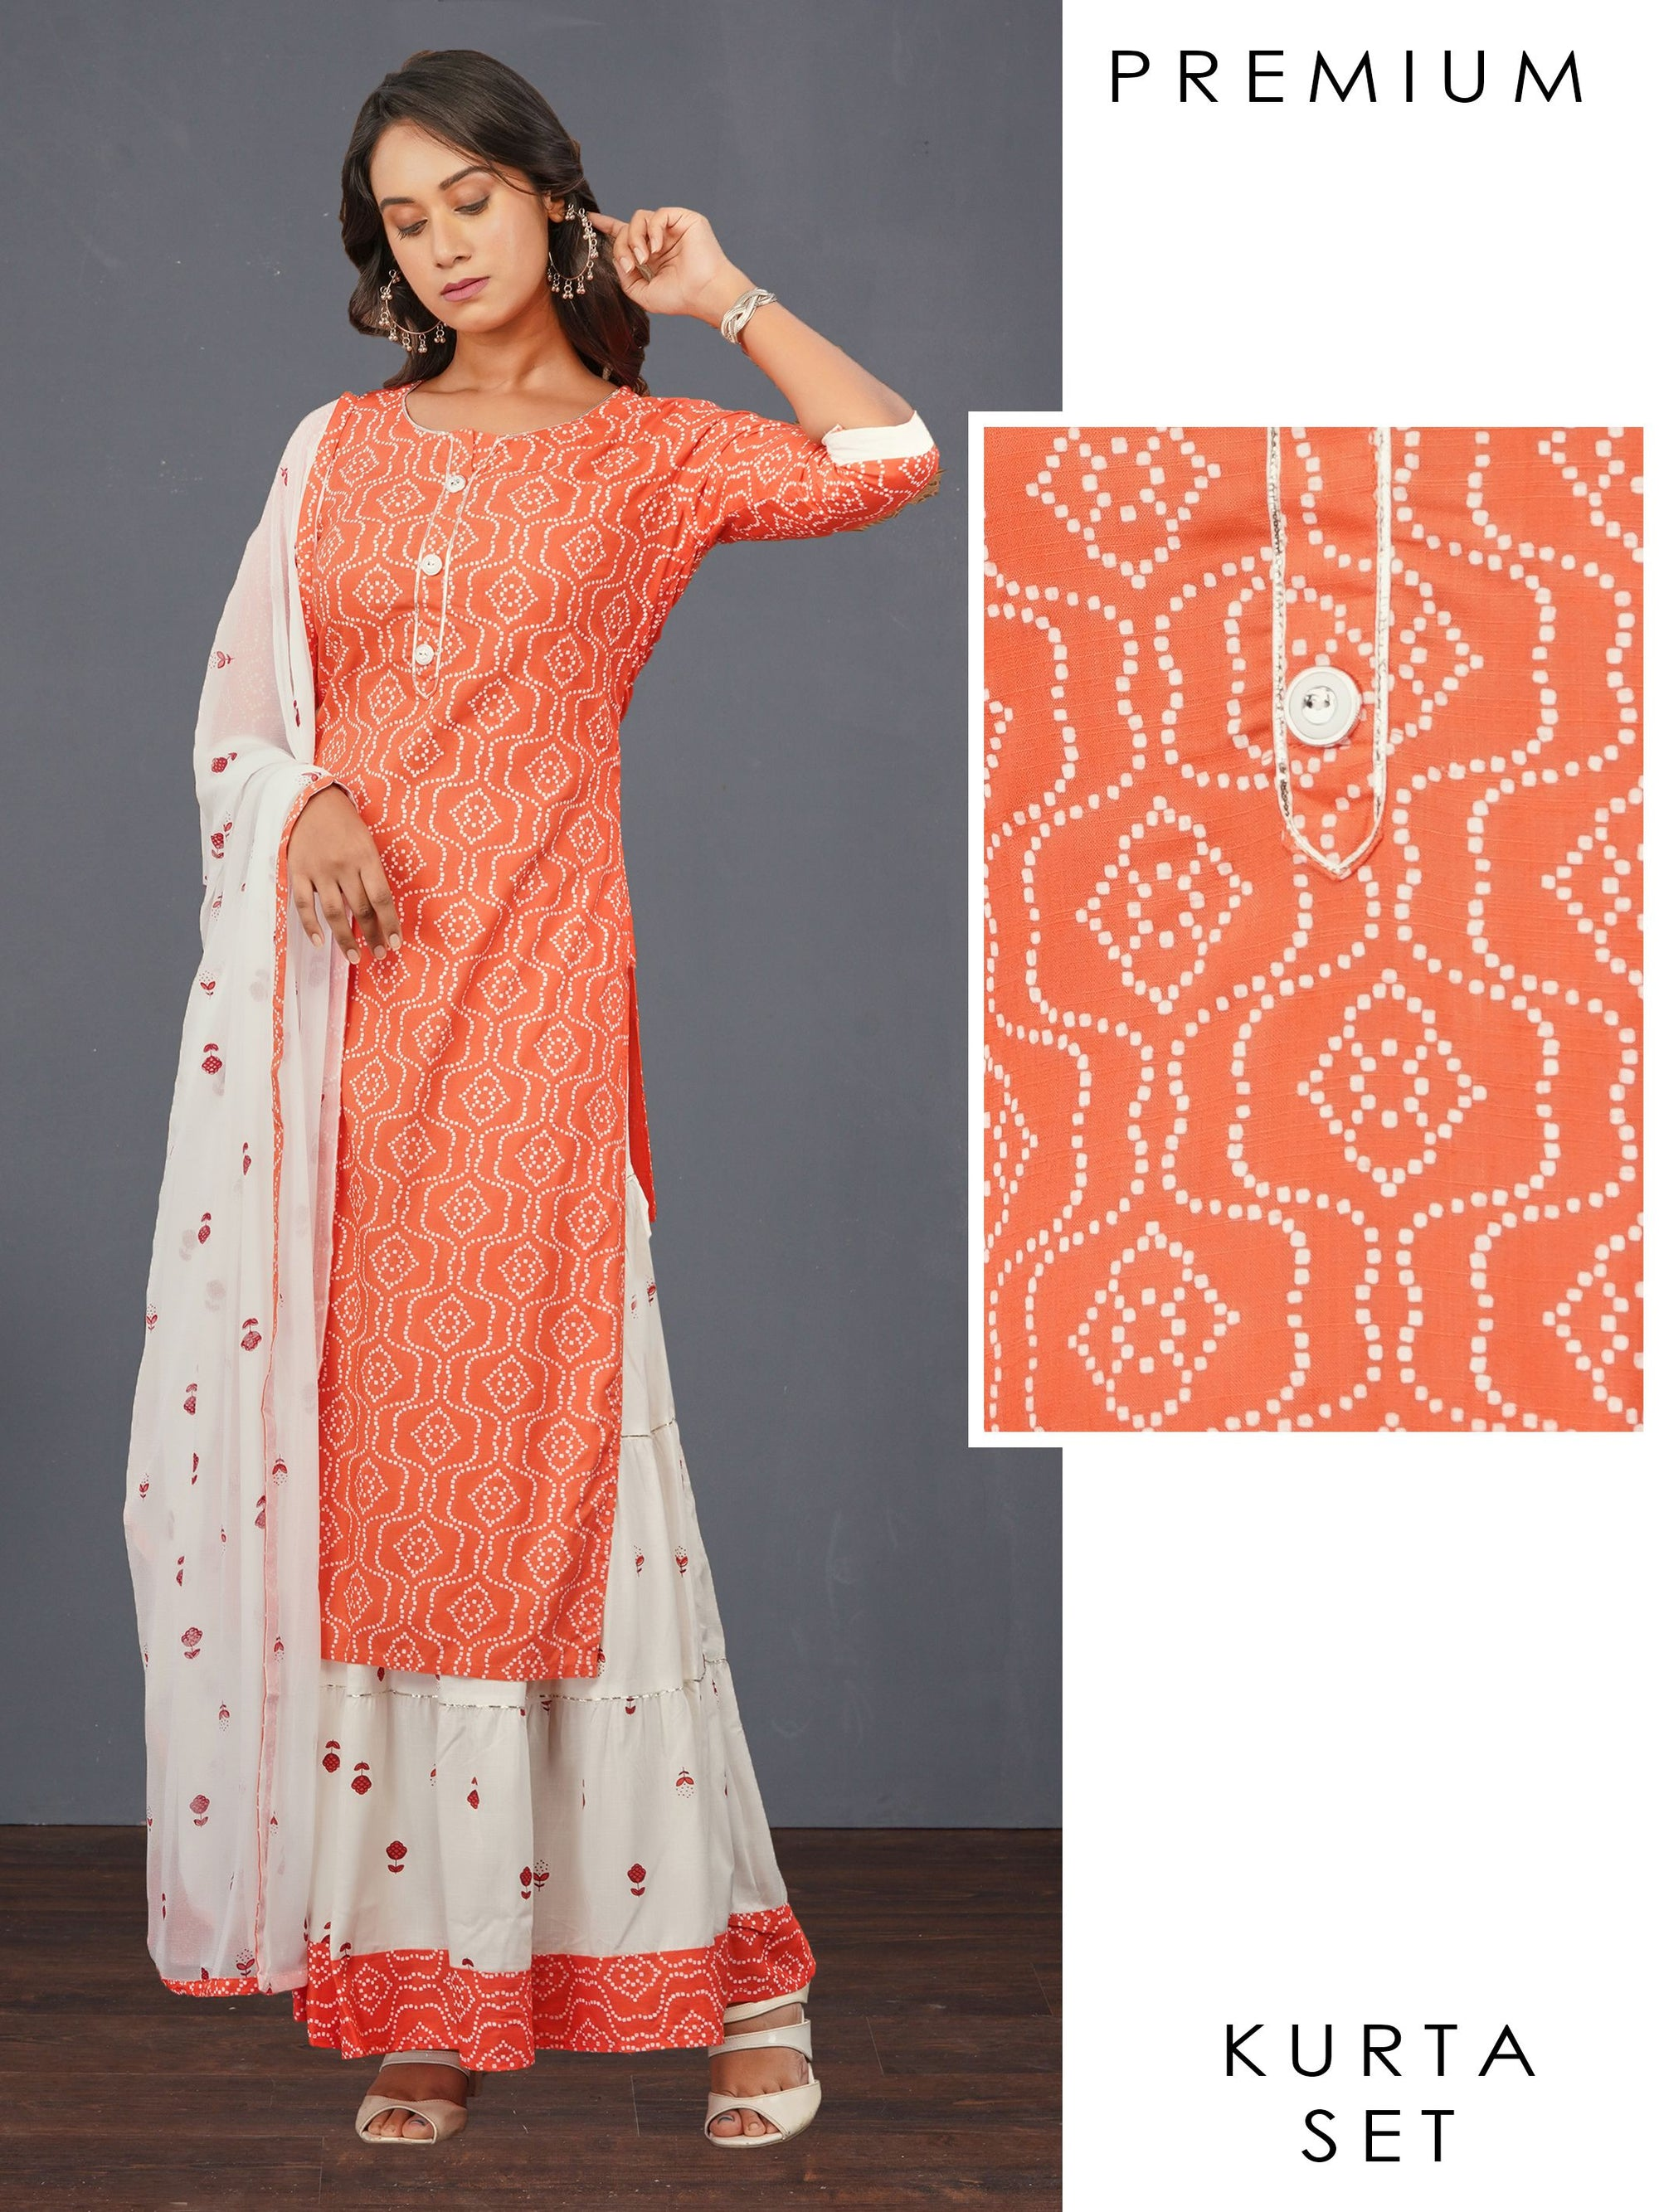 Abstract Printed Kurti, Tiered Skirt & Floral Printed Dupatta Set – Orange